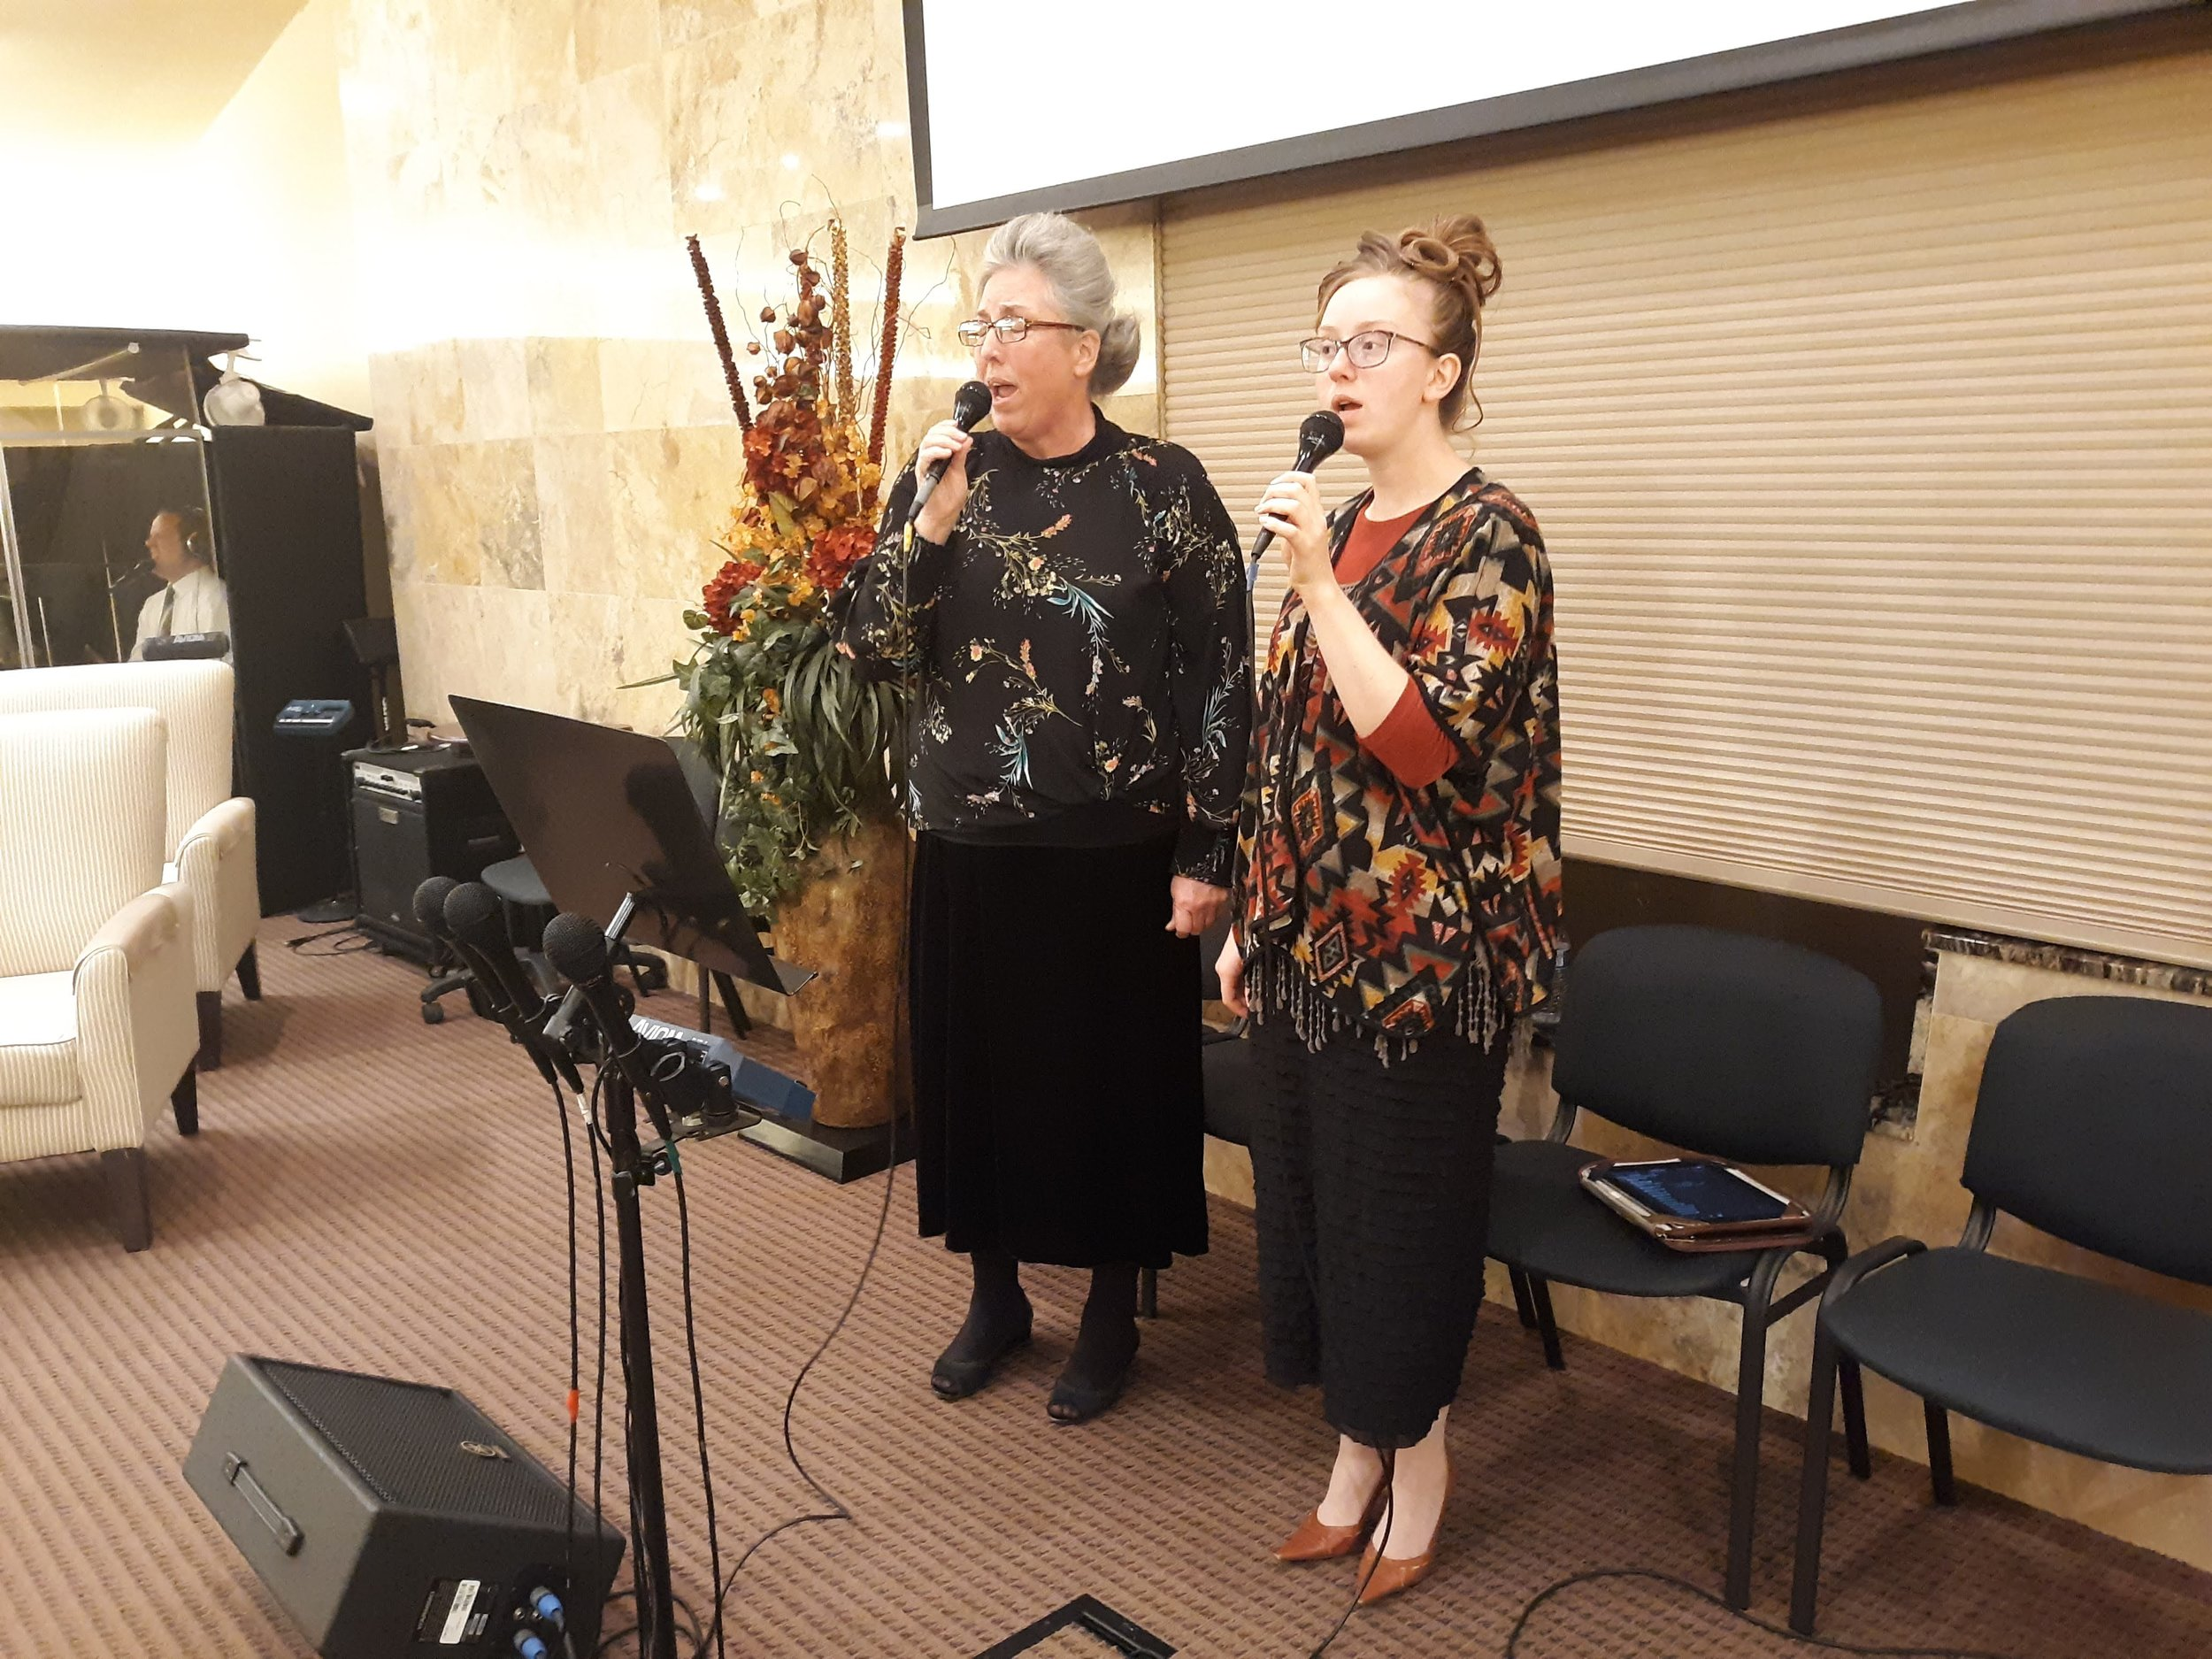 Our singers - Sis. Sandy and Sis. Sarah